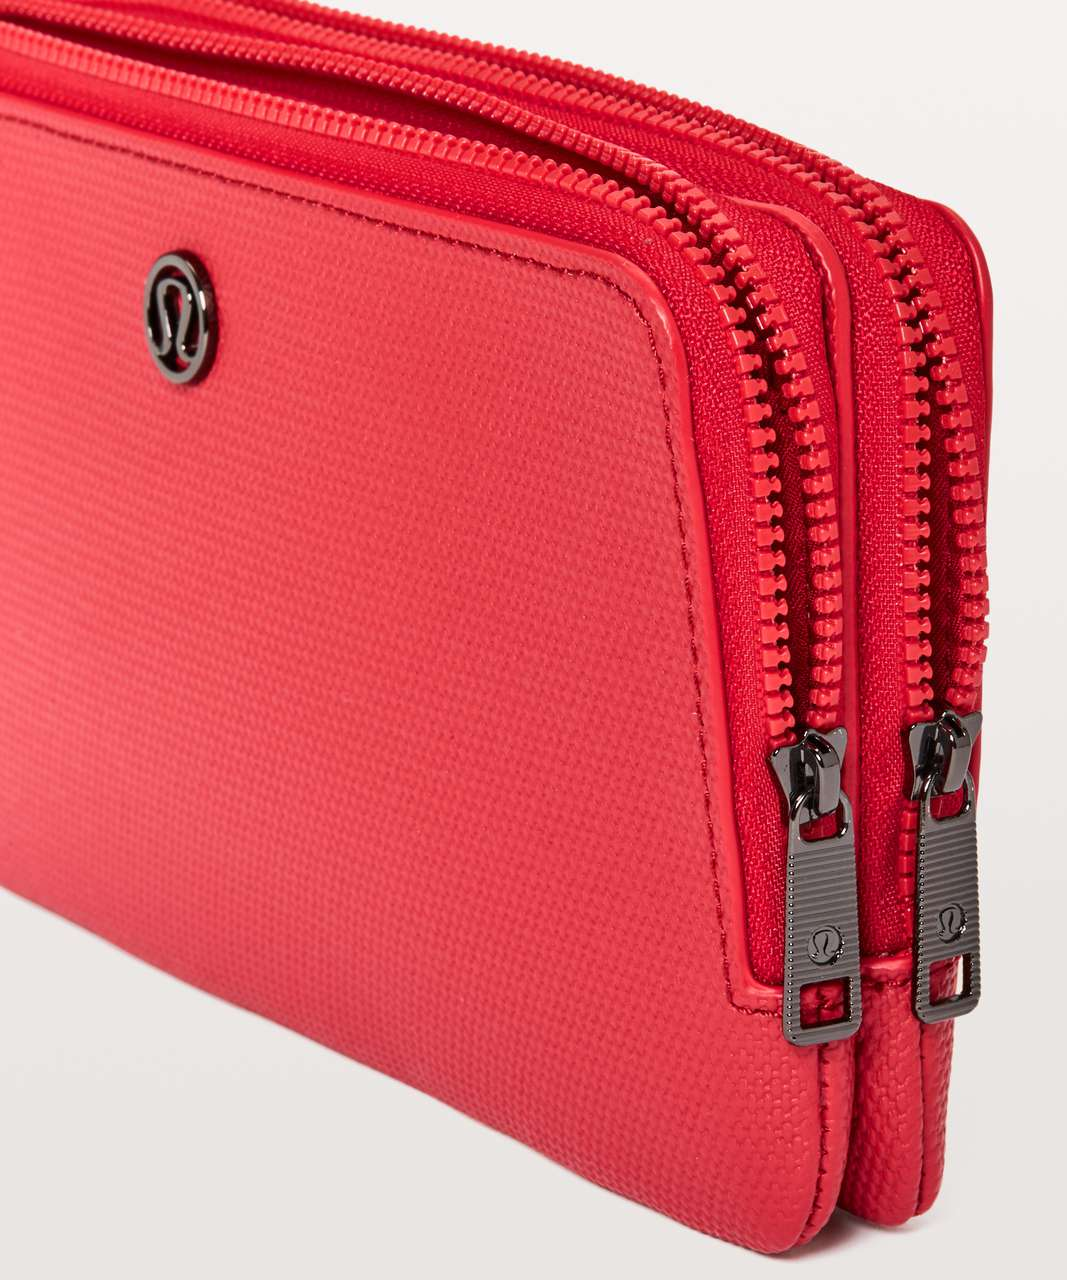 Lululemon Double Up Pouch - Dark Red